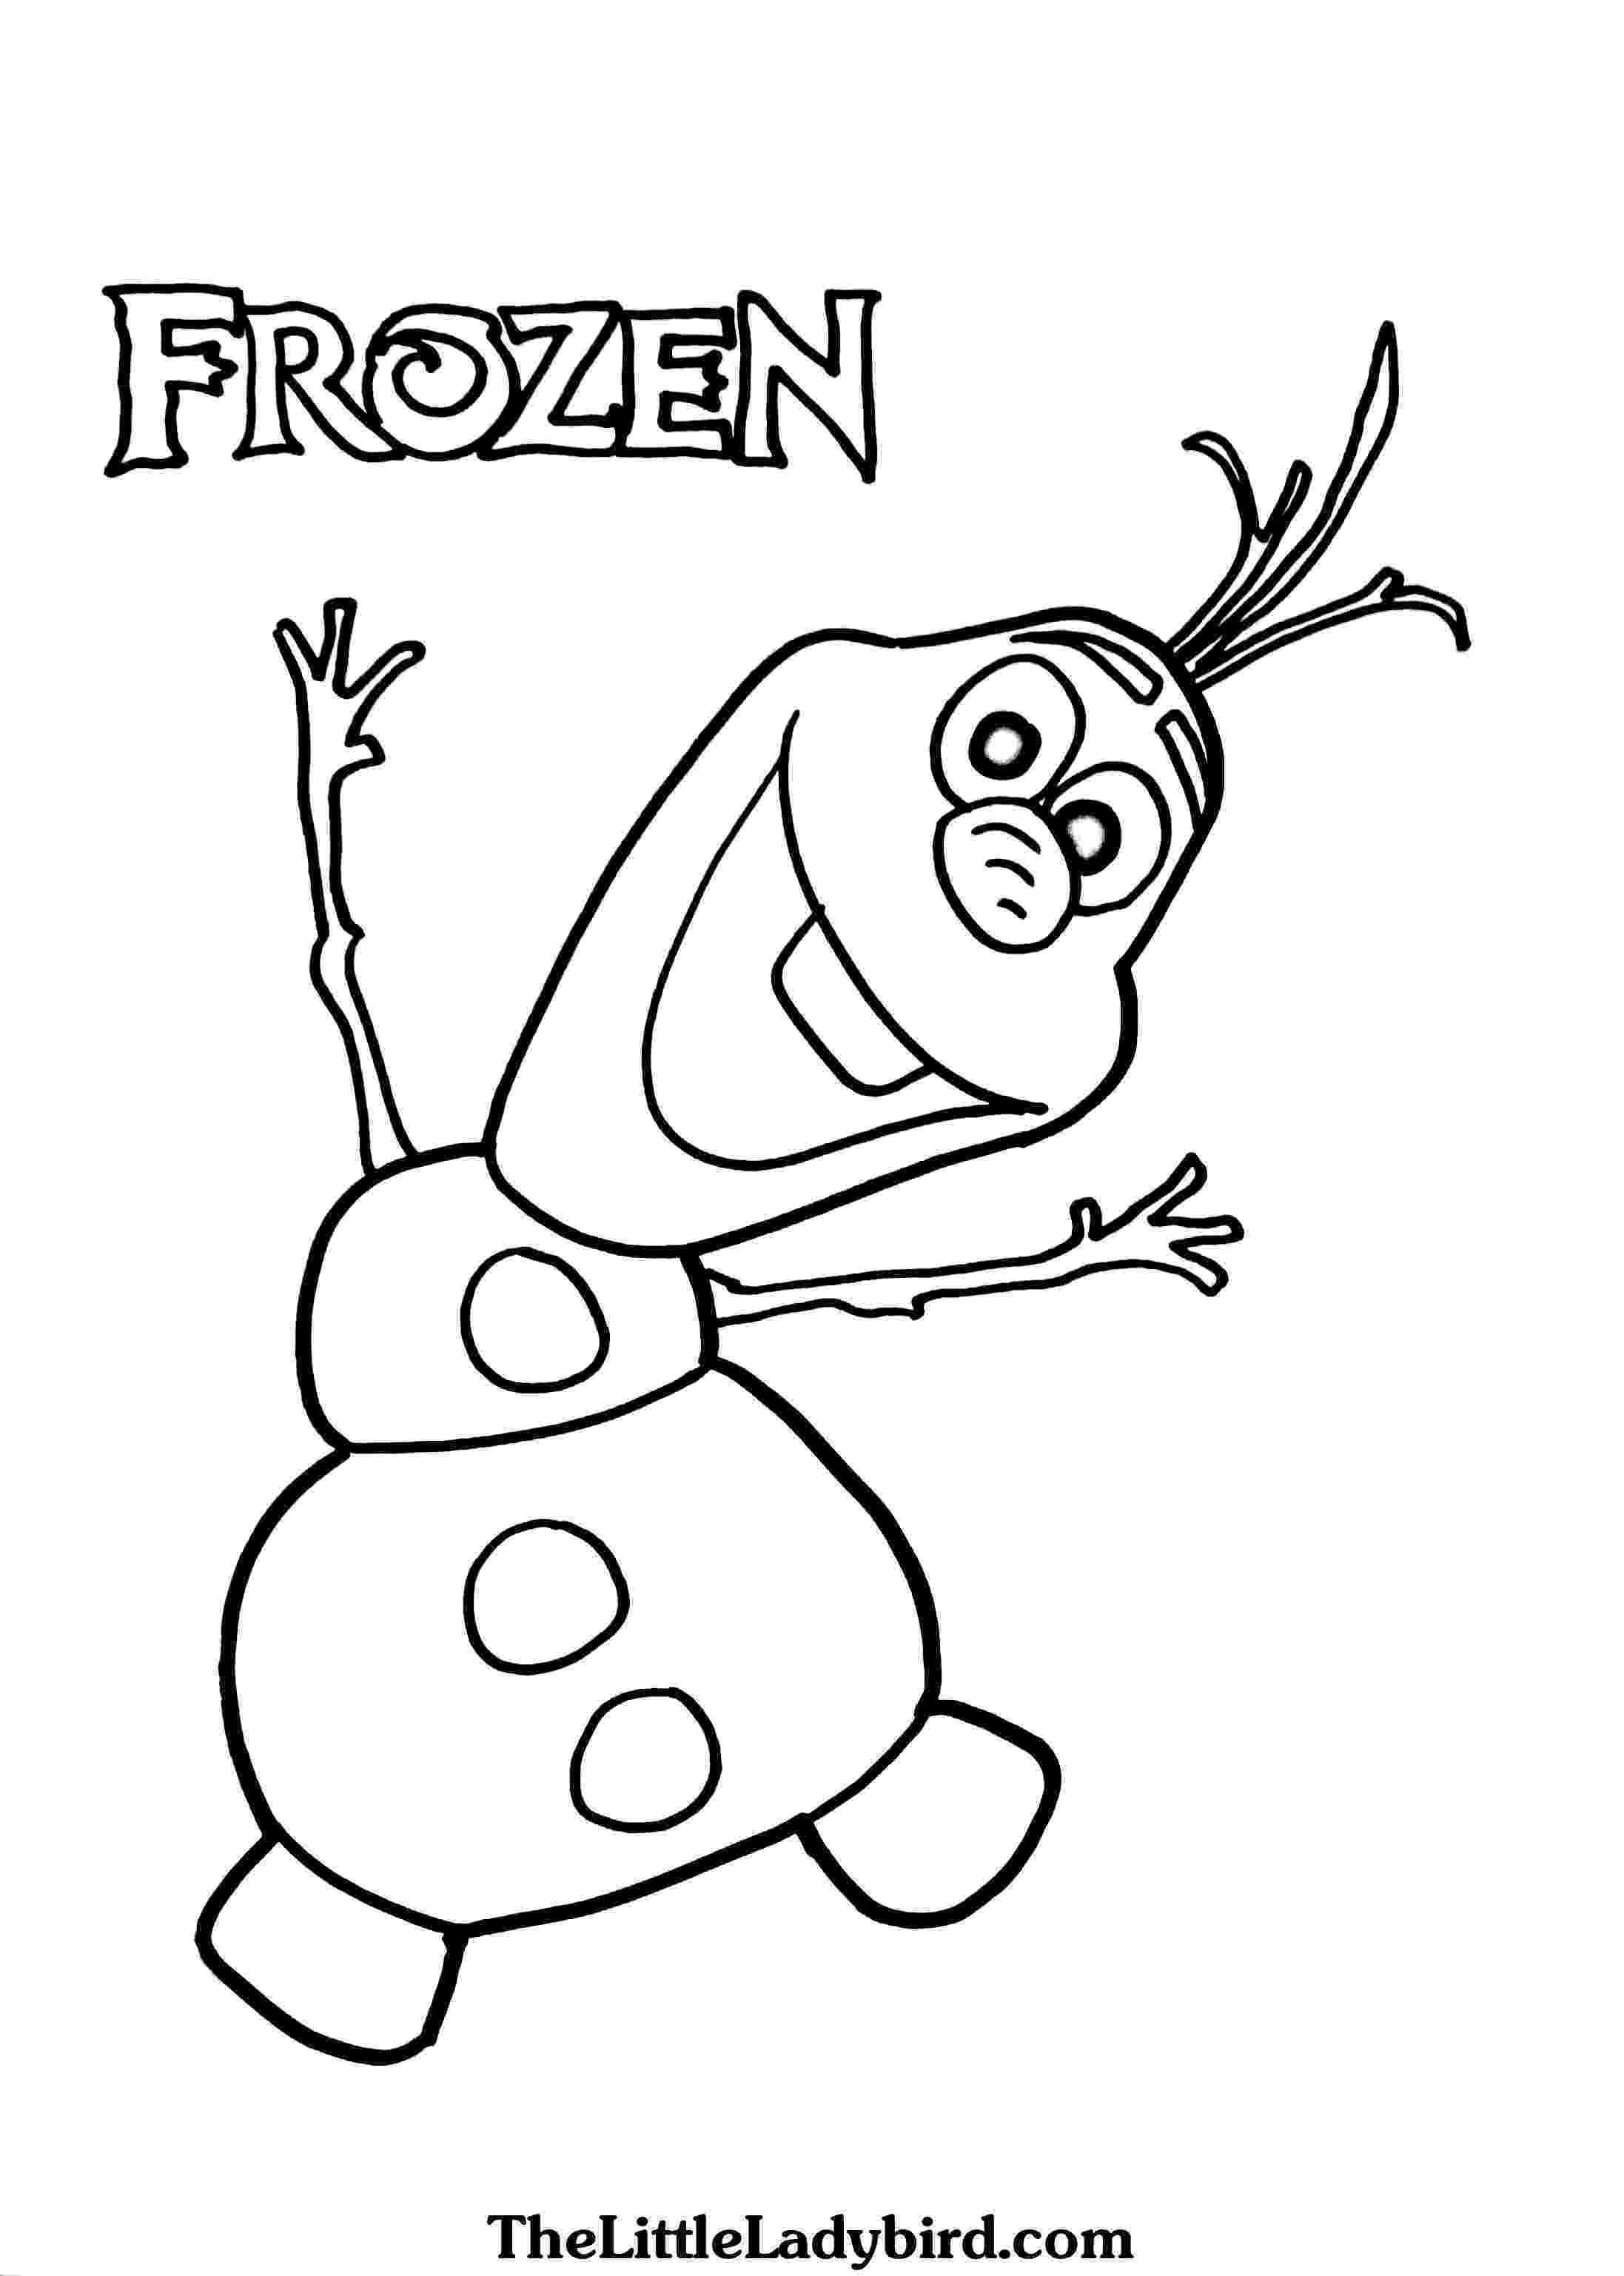 frozen olaf coloring nice ideas olaf frozen coloring pages page party pinterest coloring olaf frozen